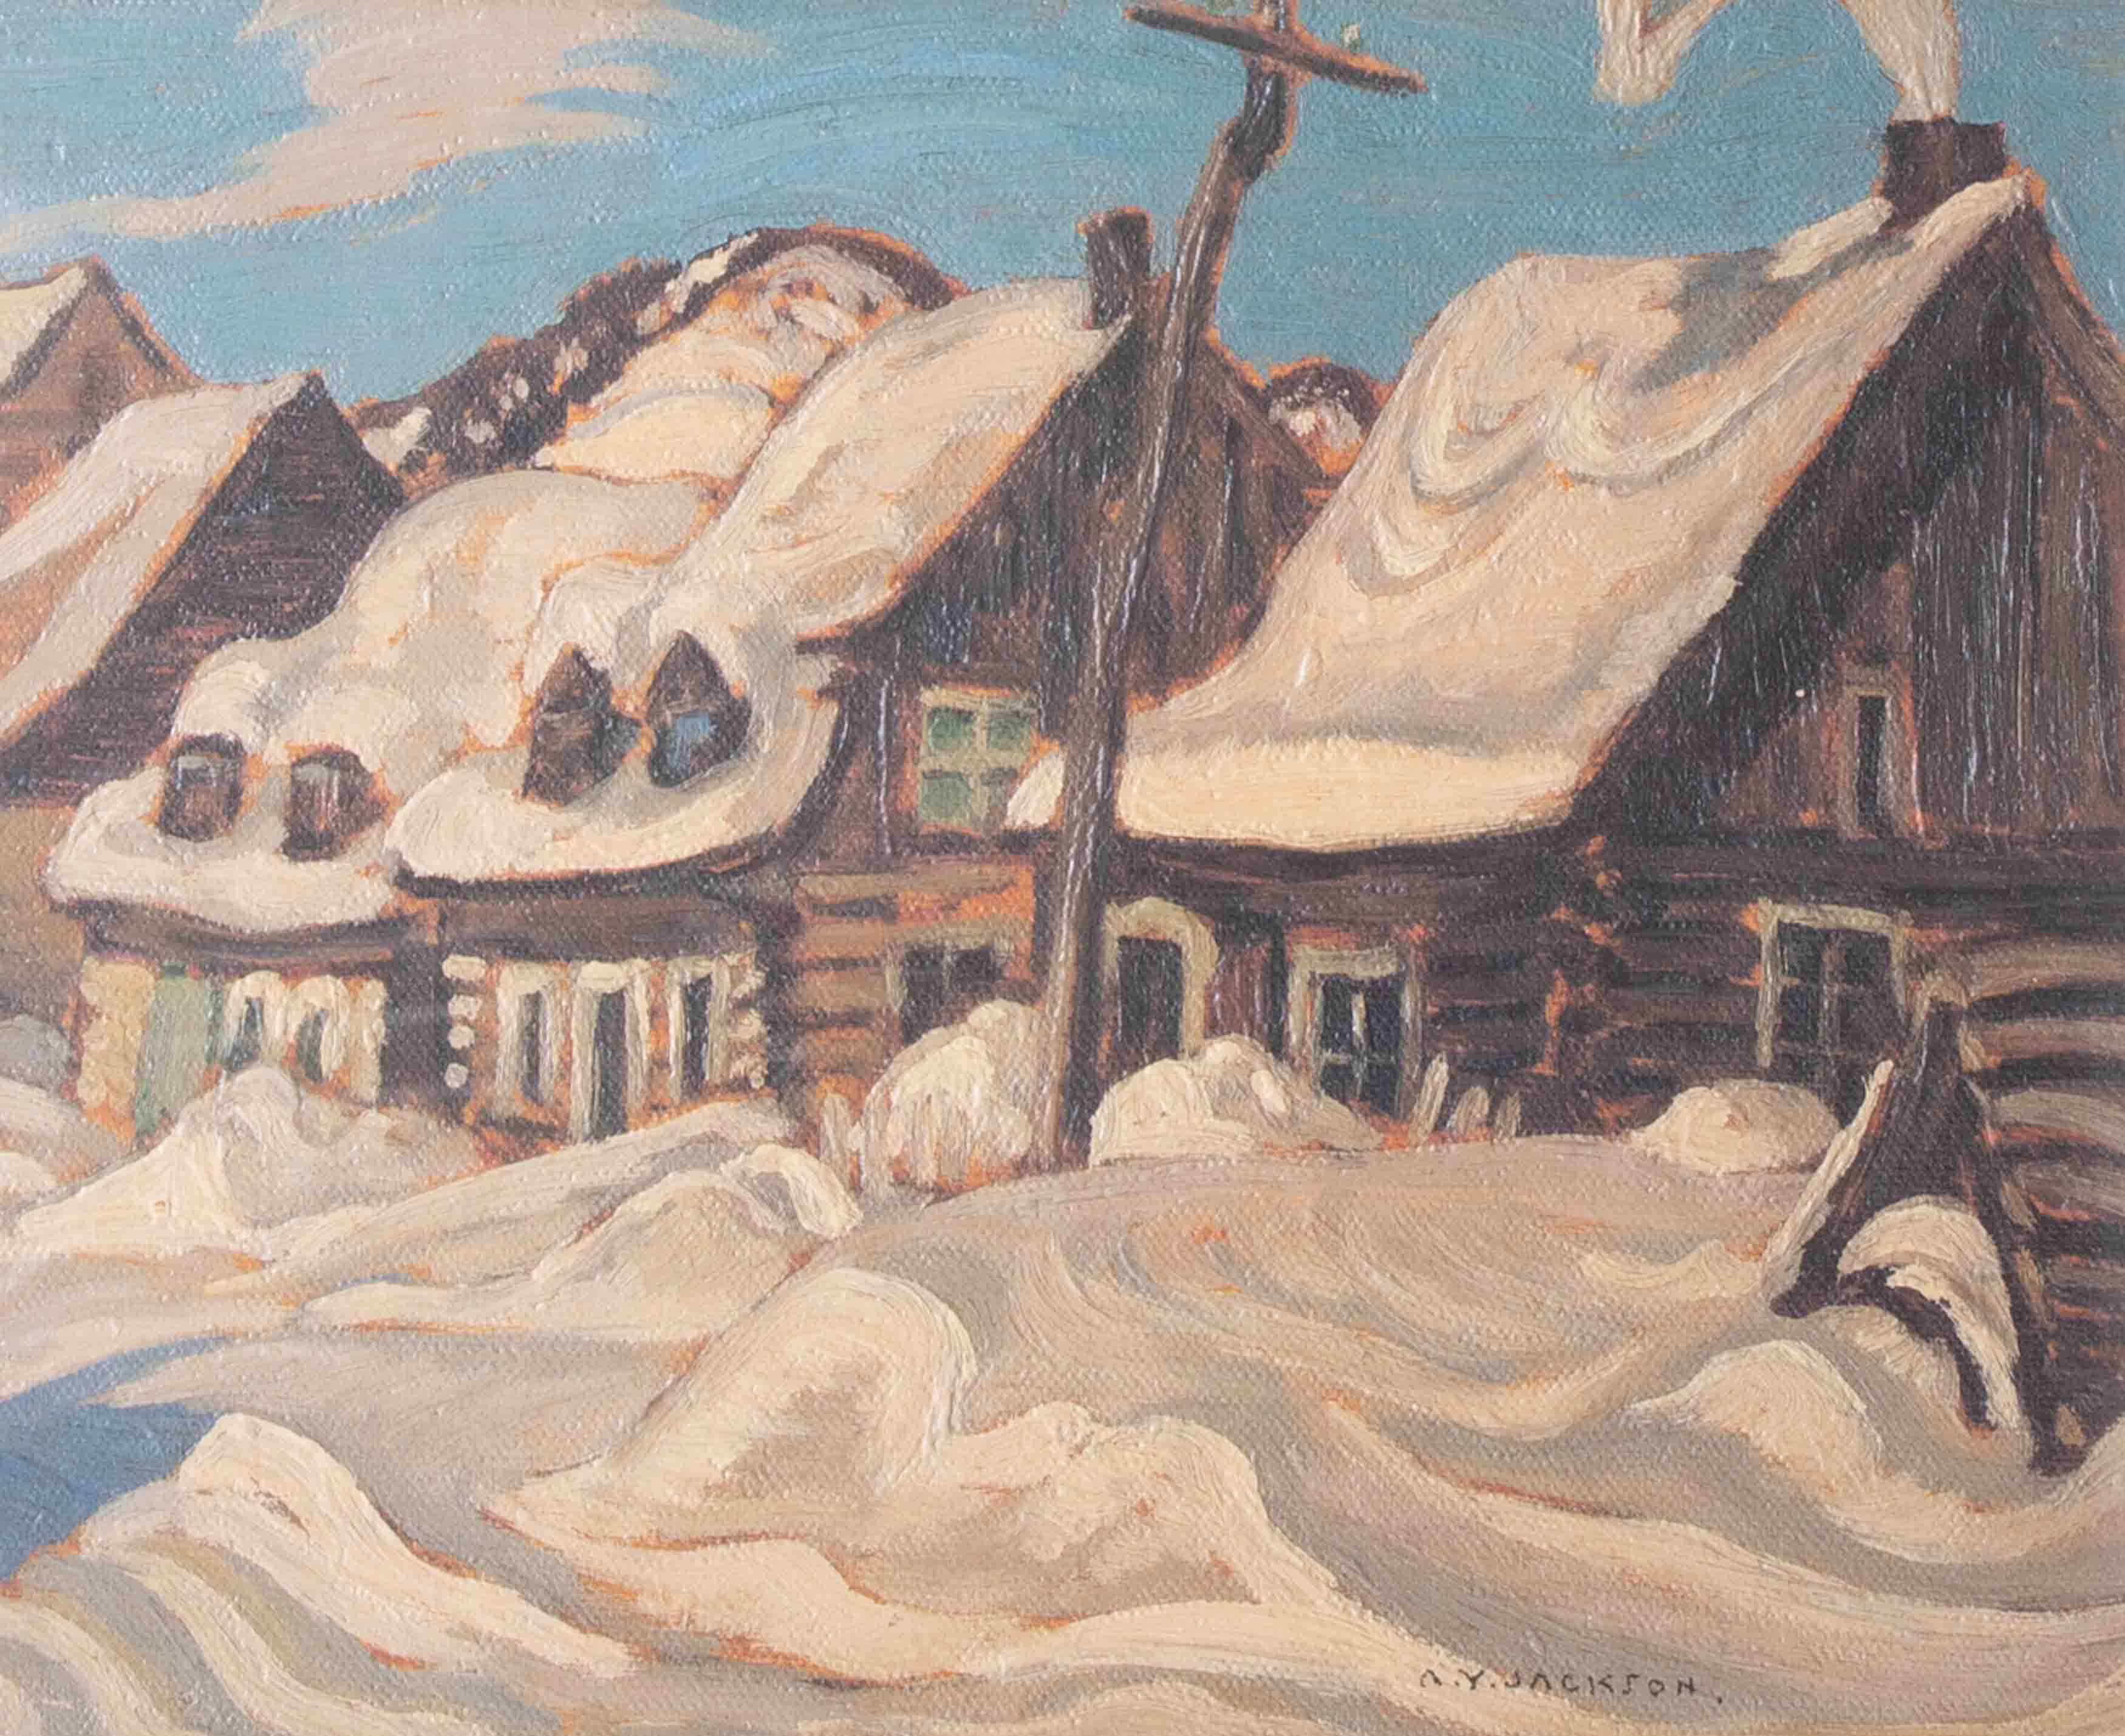 A.Y.Jackson, 'Houses, St.Urbain', giclee print, framed and glazed, 19cm x 23cm, was a Canadian - Image 2 of 2